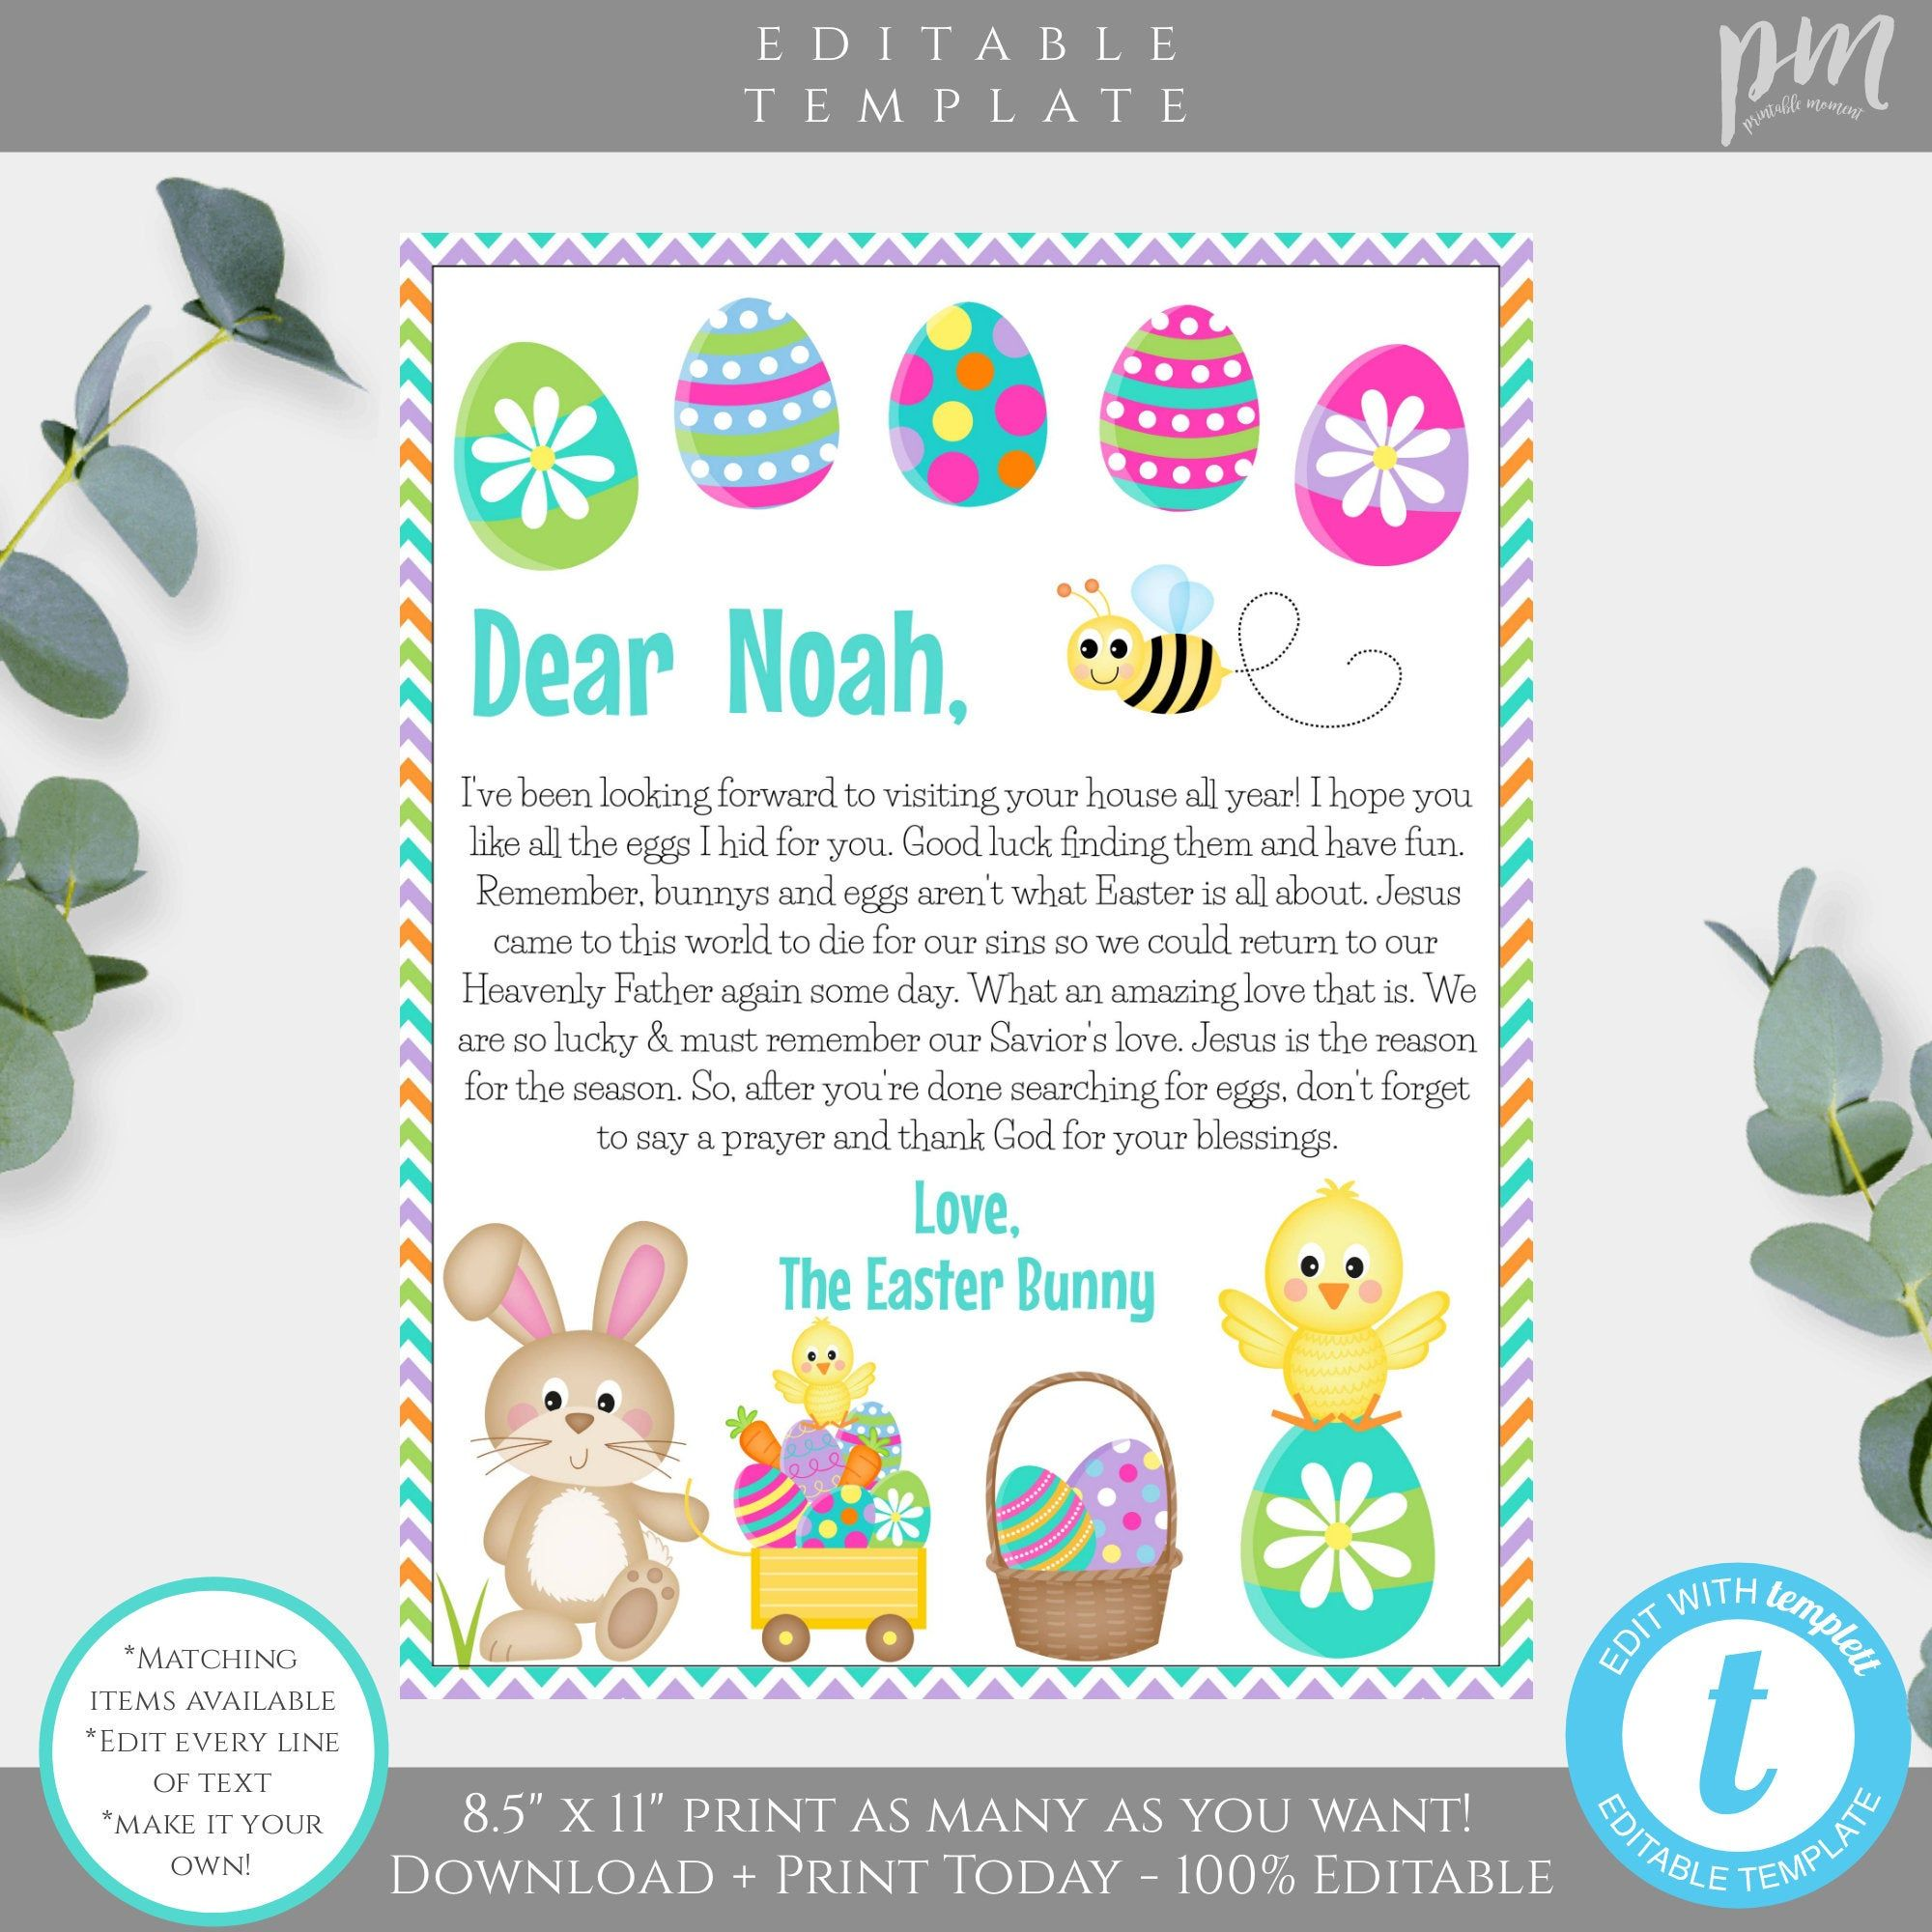 Editable Letter From The Easter Bunny Letter From The Easter